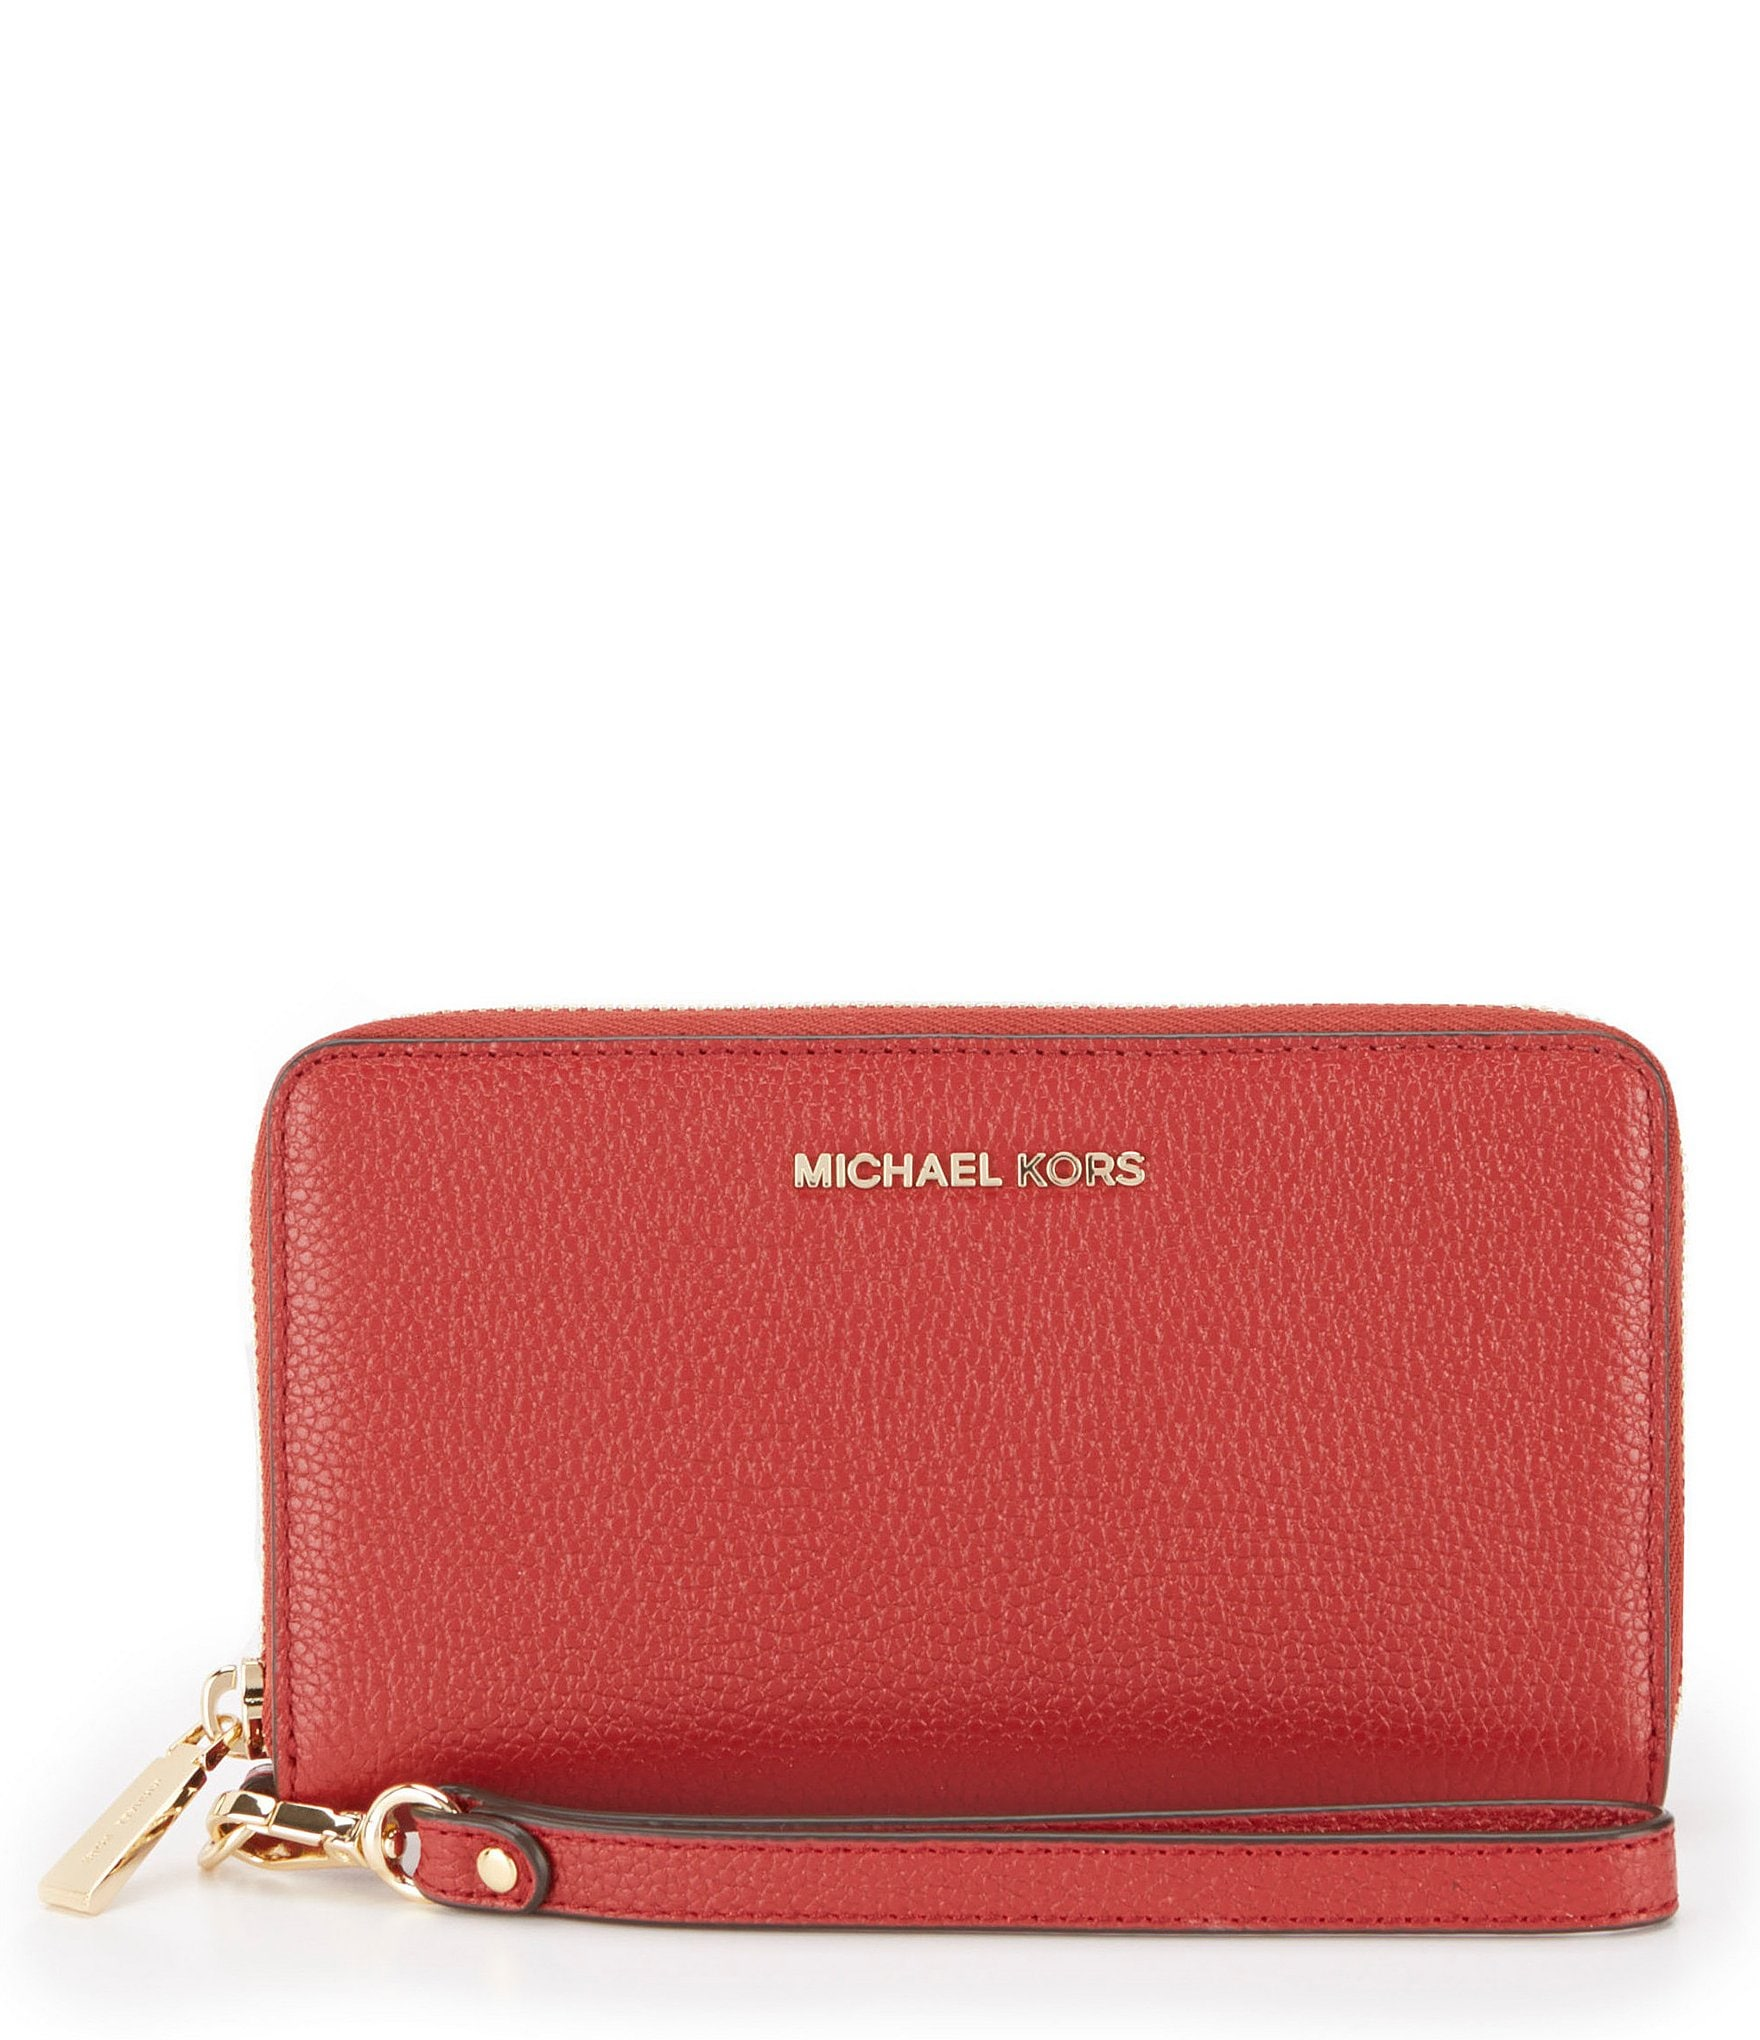 fdb6d71d69 Buy michael kors laptop tote red   OFF65% Discounted